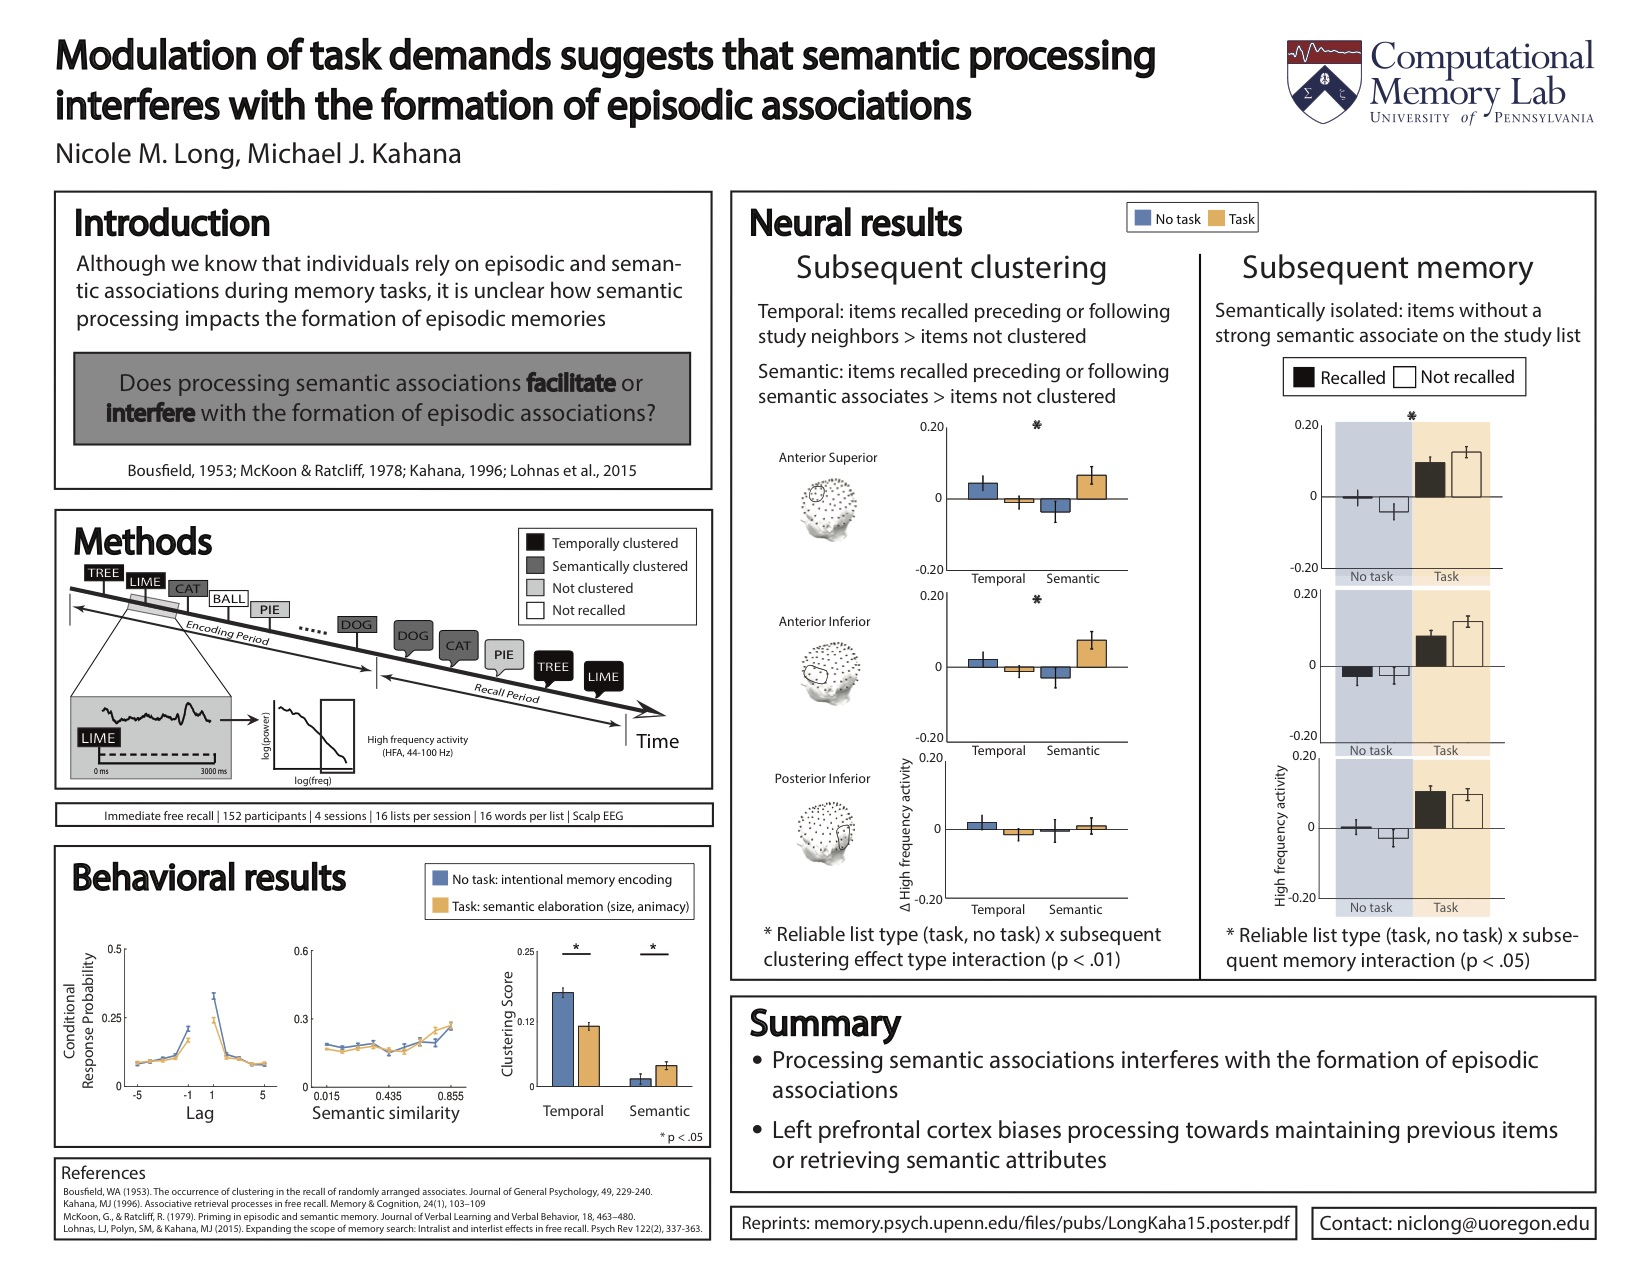 Modulation of task demands suggests that semantic processing interferes with the formation of episodic association